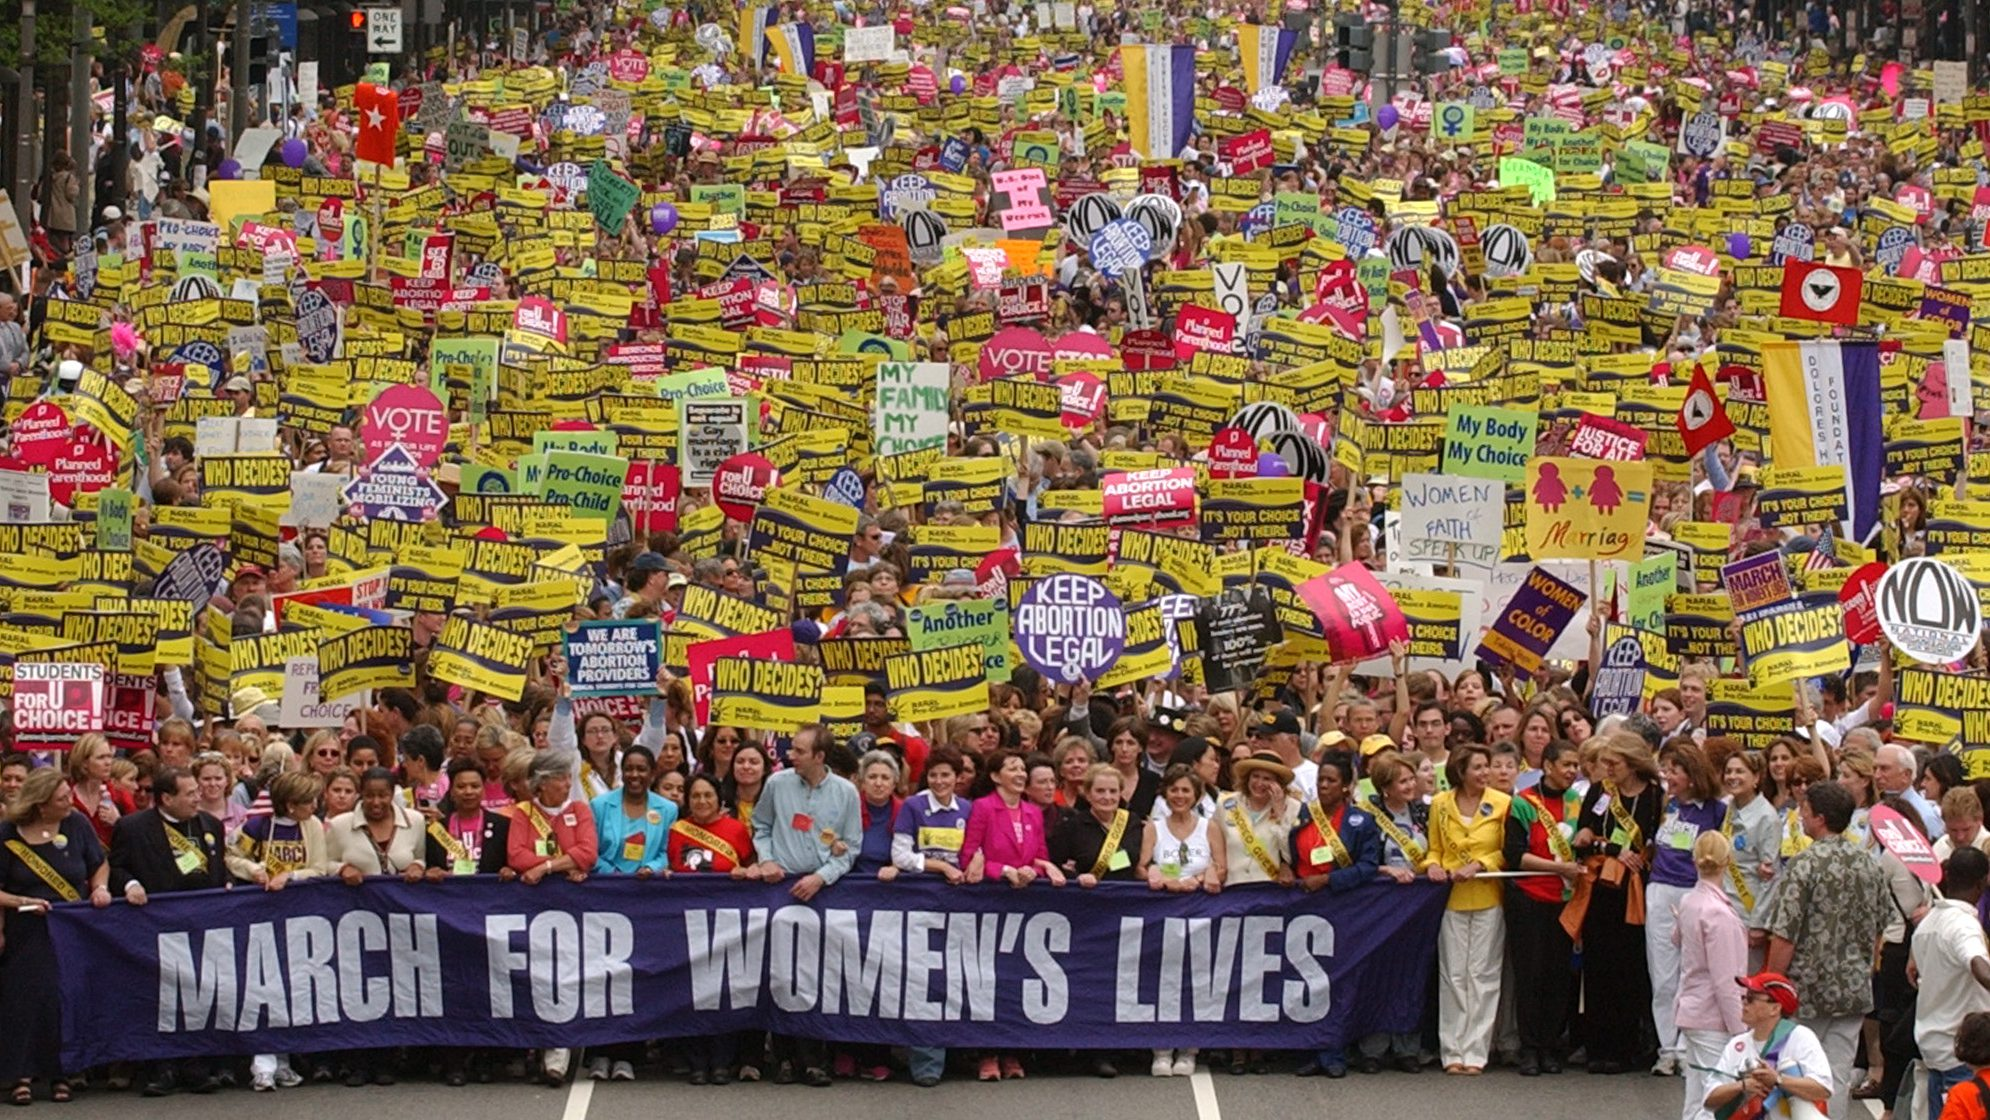 MARCH for womens lives